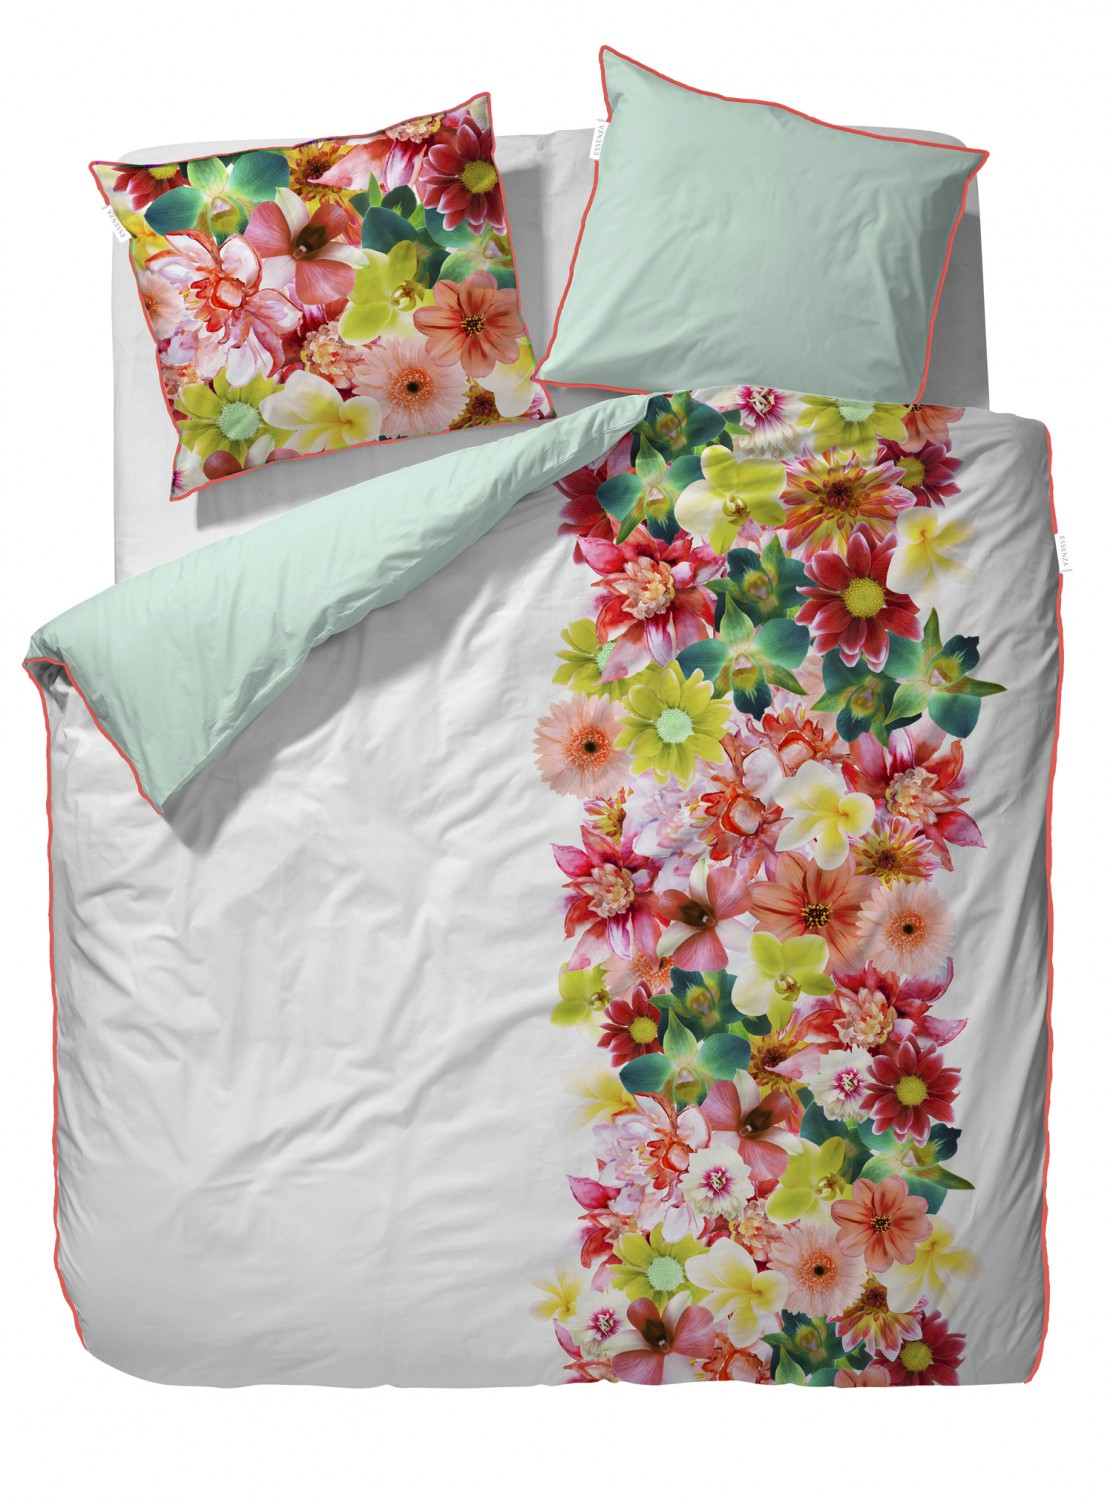 Essenza Baumwoll-Satin Bettwäsche Belle Multi Digitaldruck 3380